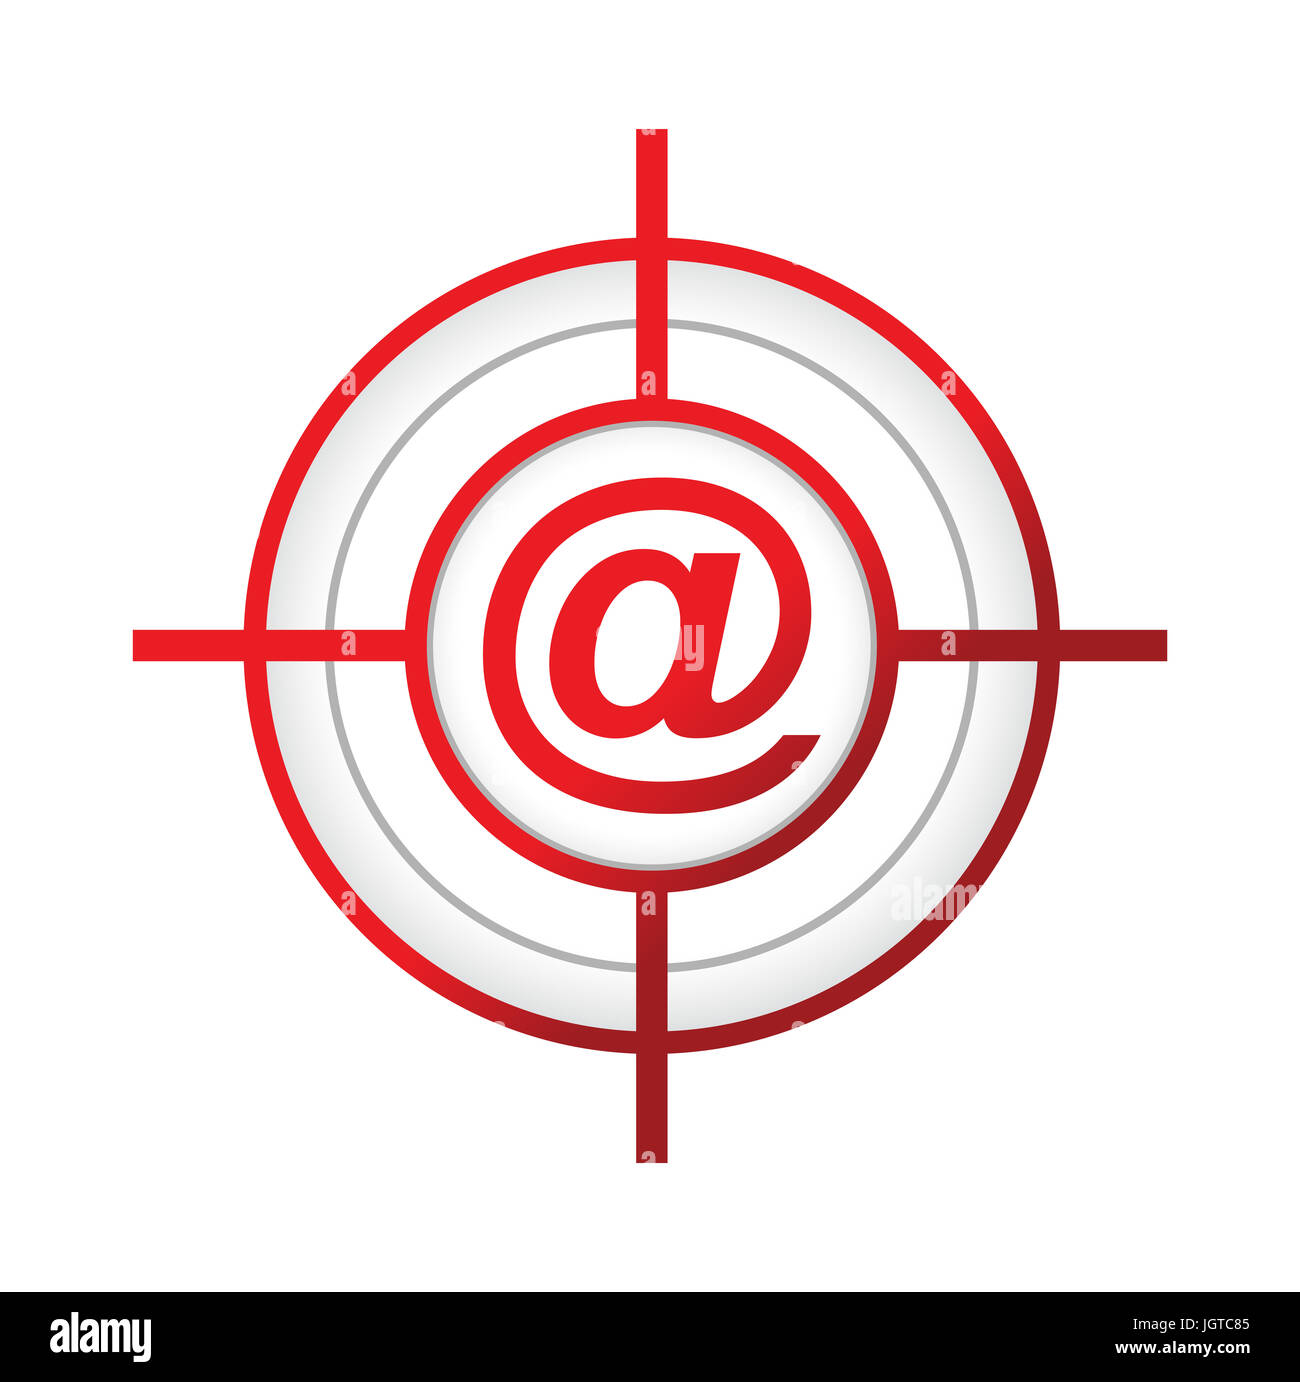 Crosshairs Target Stock Photos Crosshairs Target Stock Images Alamy